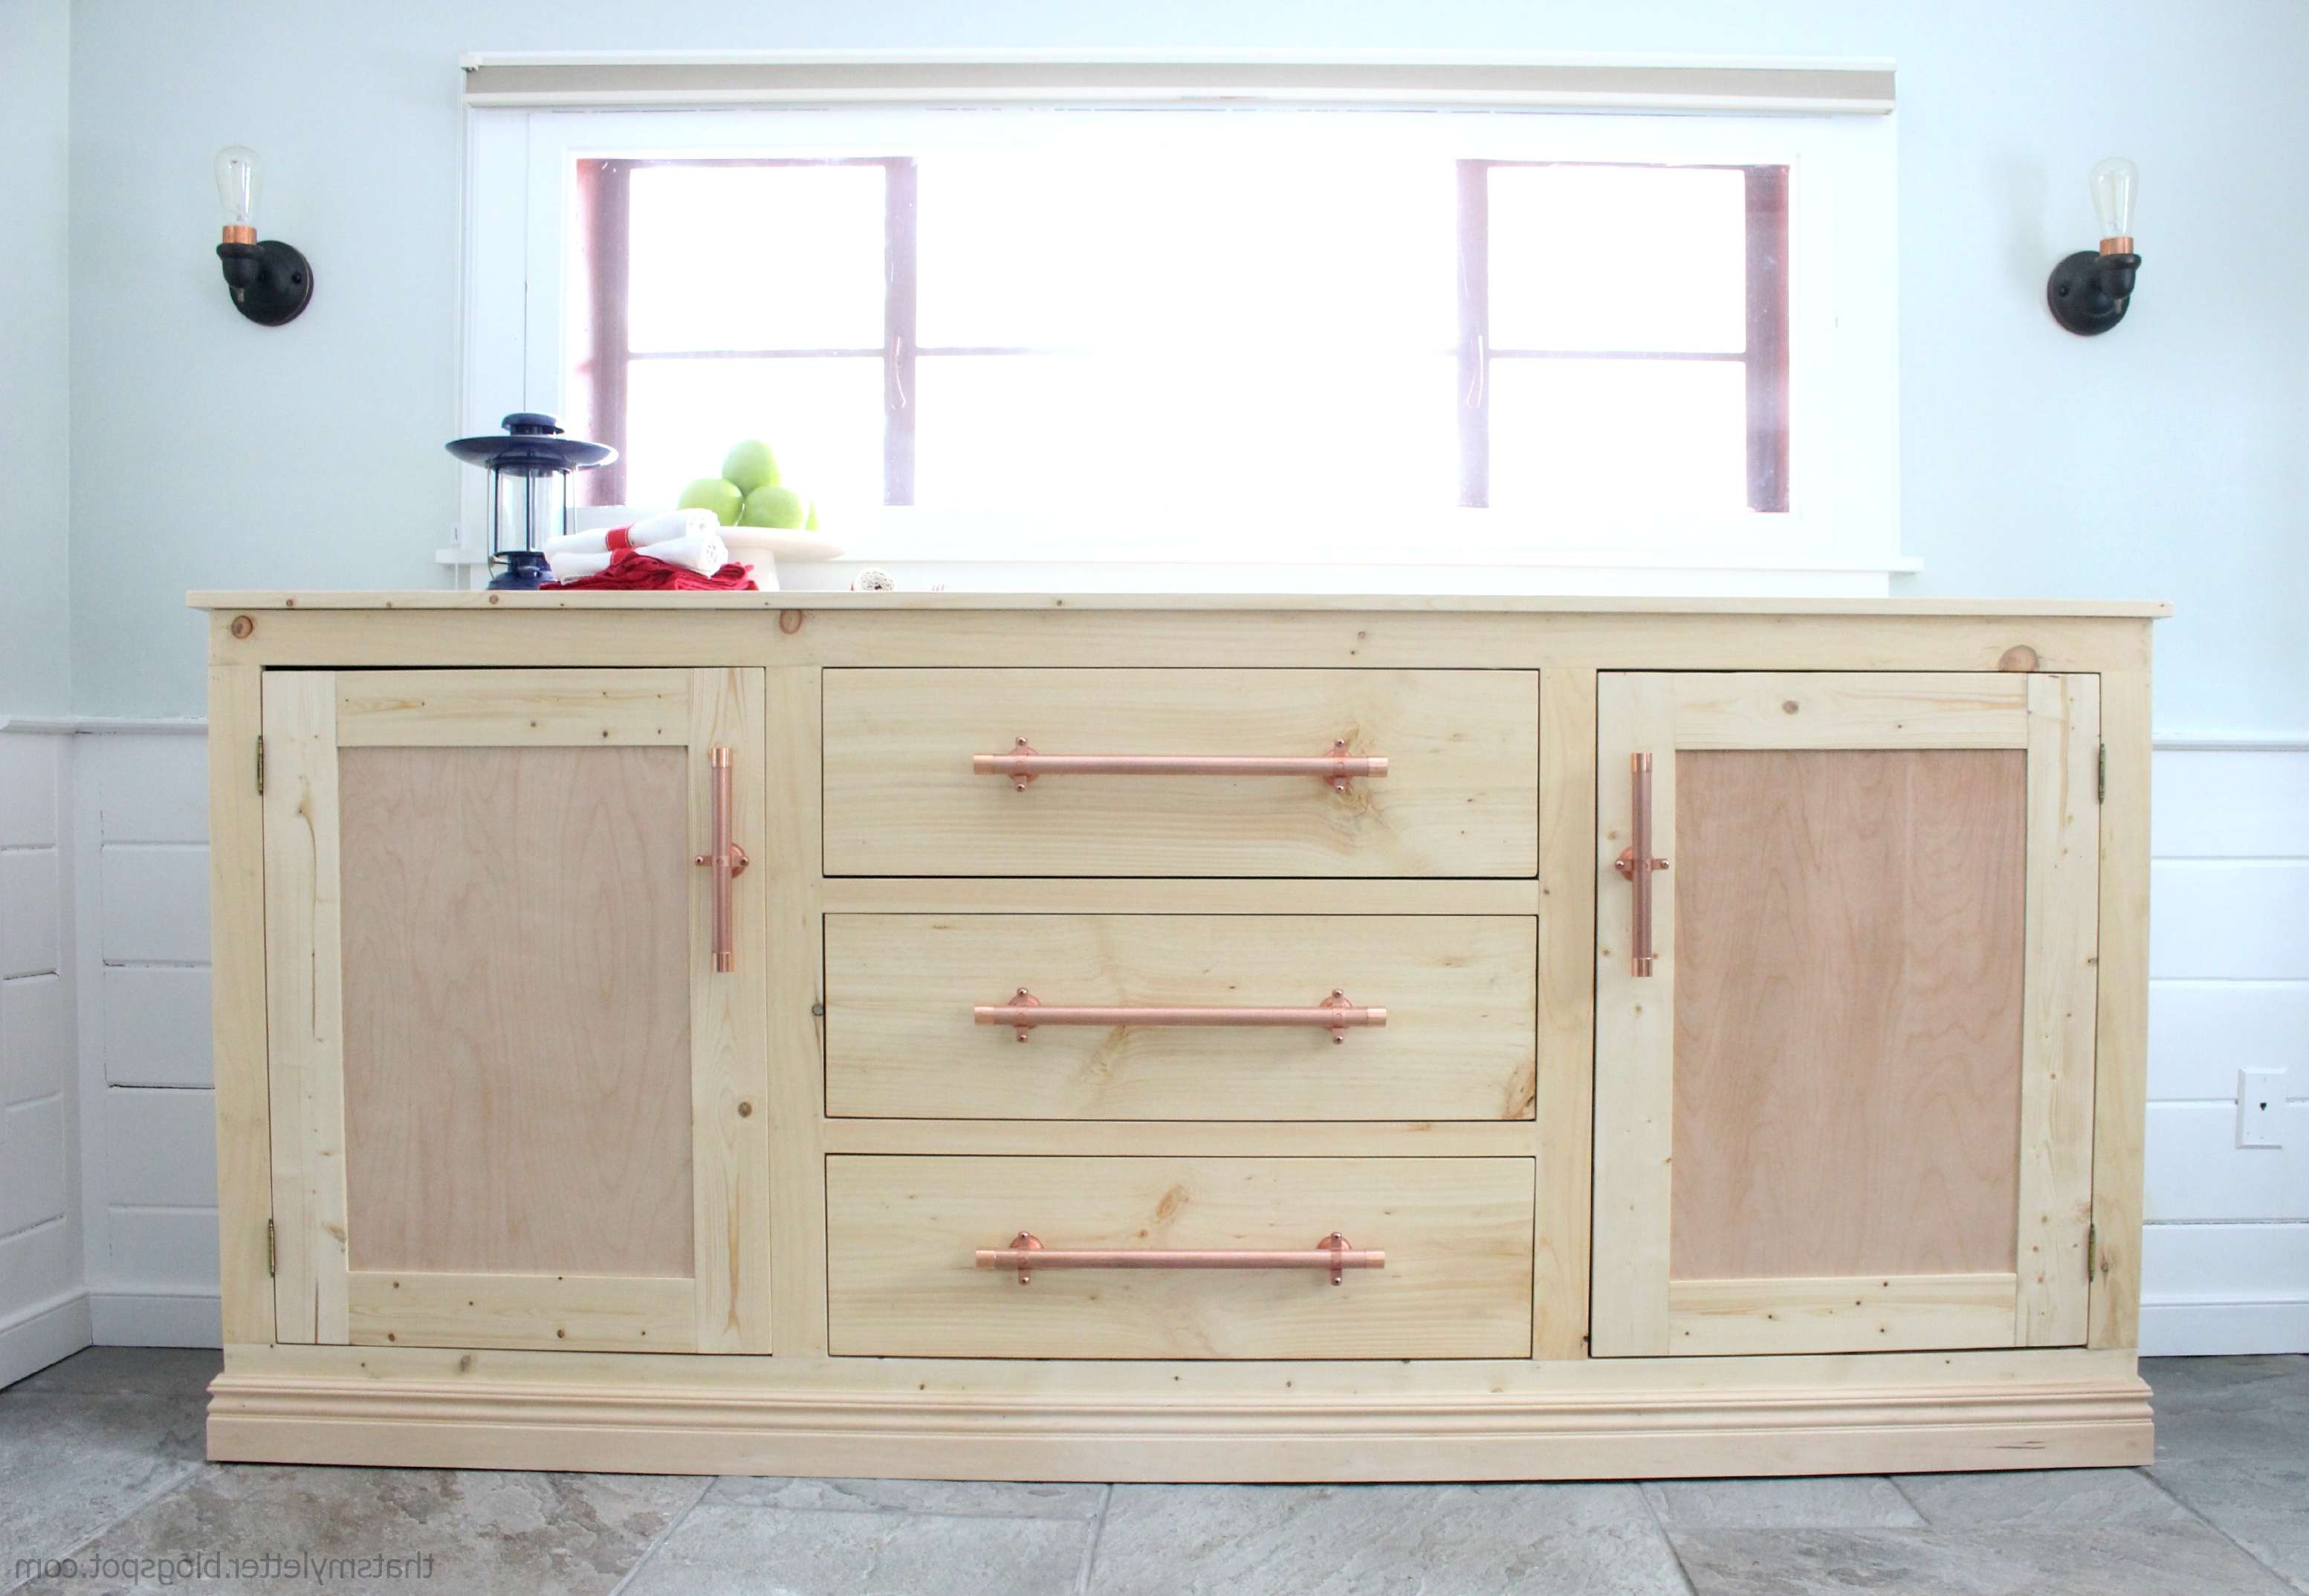 Ana White | Extra Long Buffet Cabinet – Diy Projects Throughout 7 Foot Sideboards (View 1 of 20)